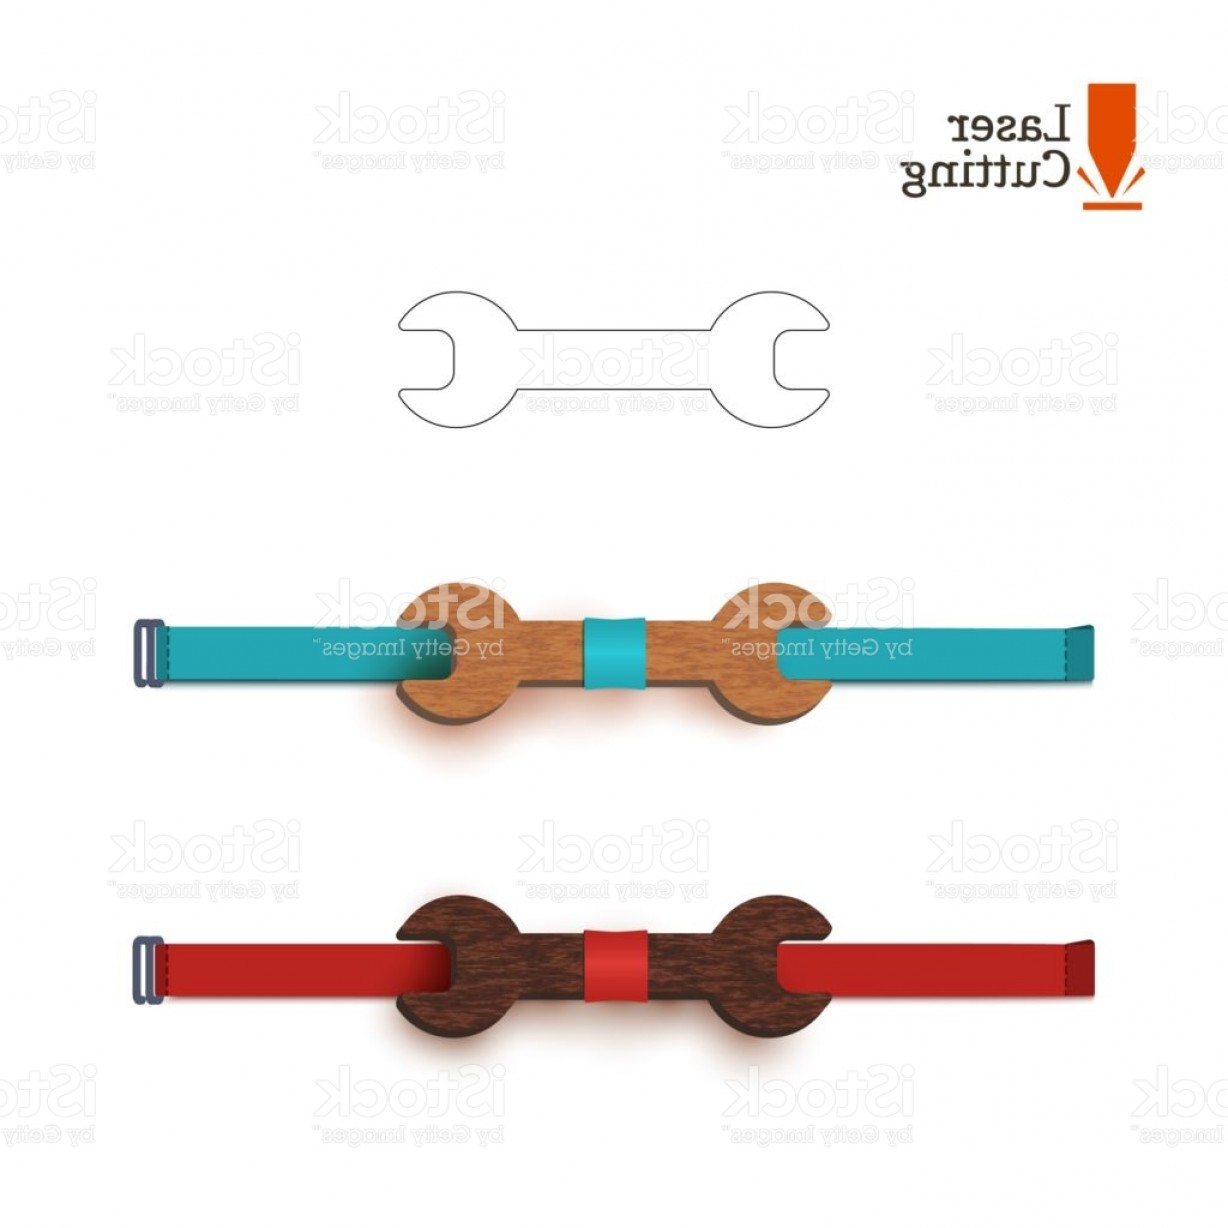 Hand Lathe Vector: Laser Cut Bow Tie Template Whith Wrench Sign Vector Silhouette For Cutting A Bow Tie Gm